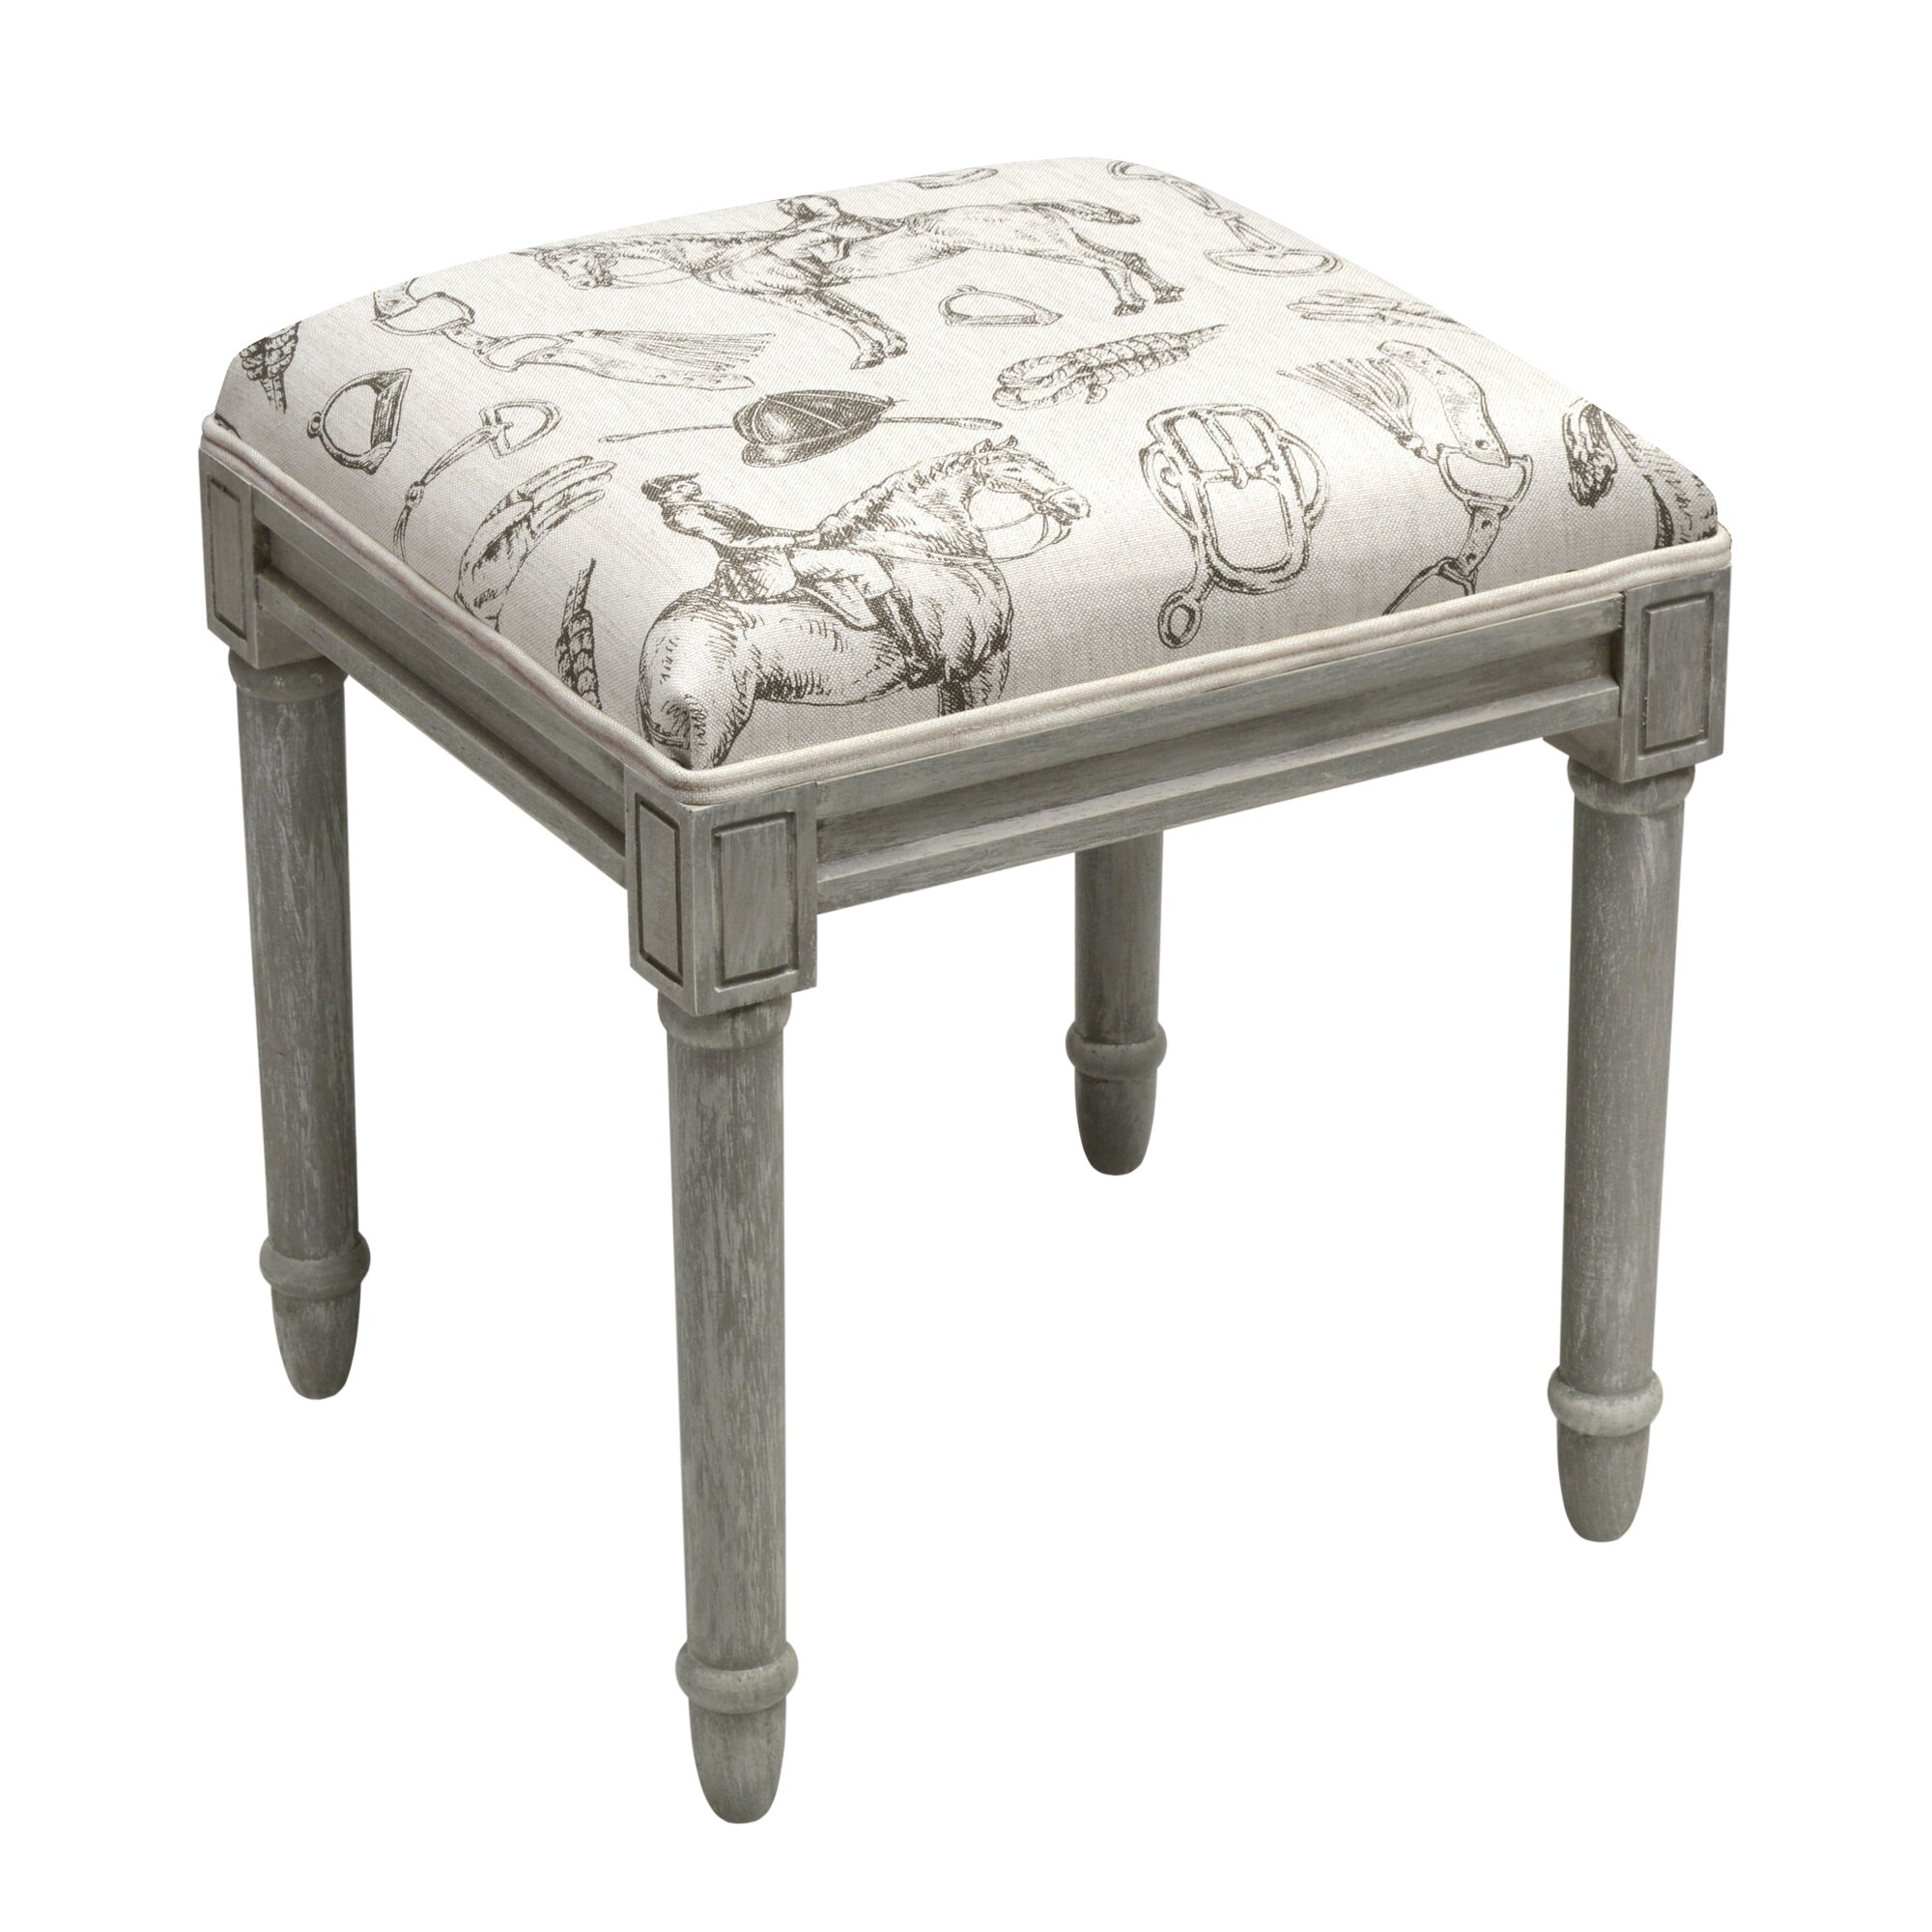 123 Creations Equestrian Vanity Stool Wayfair